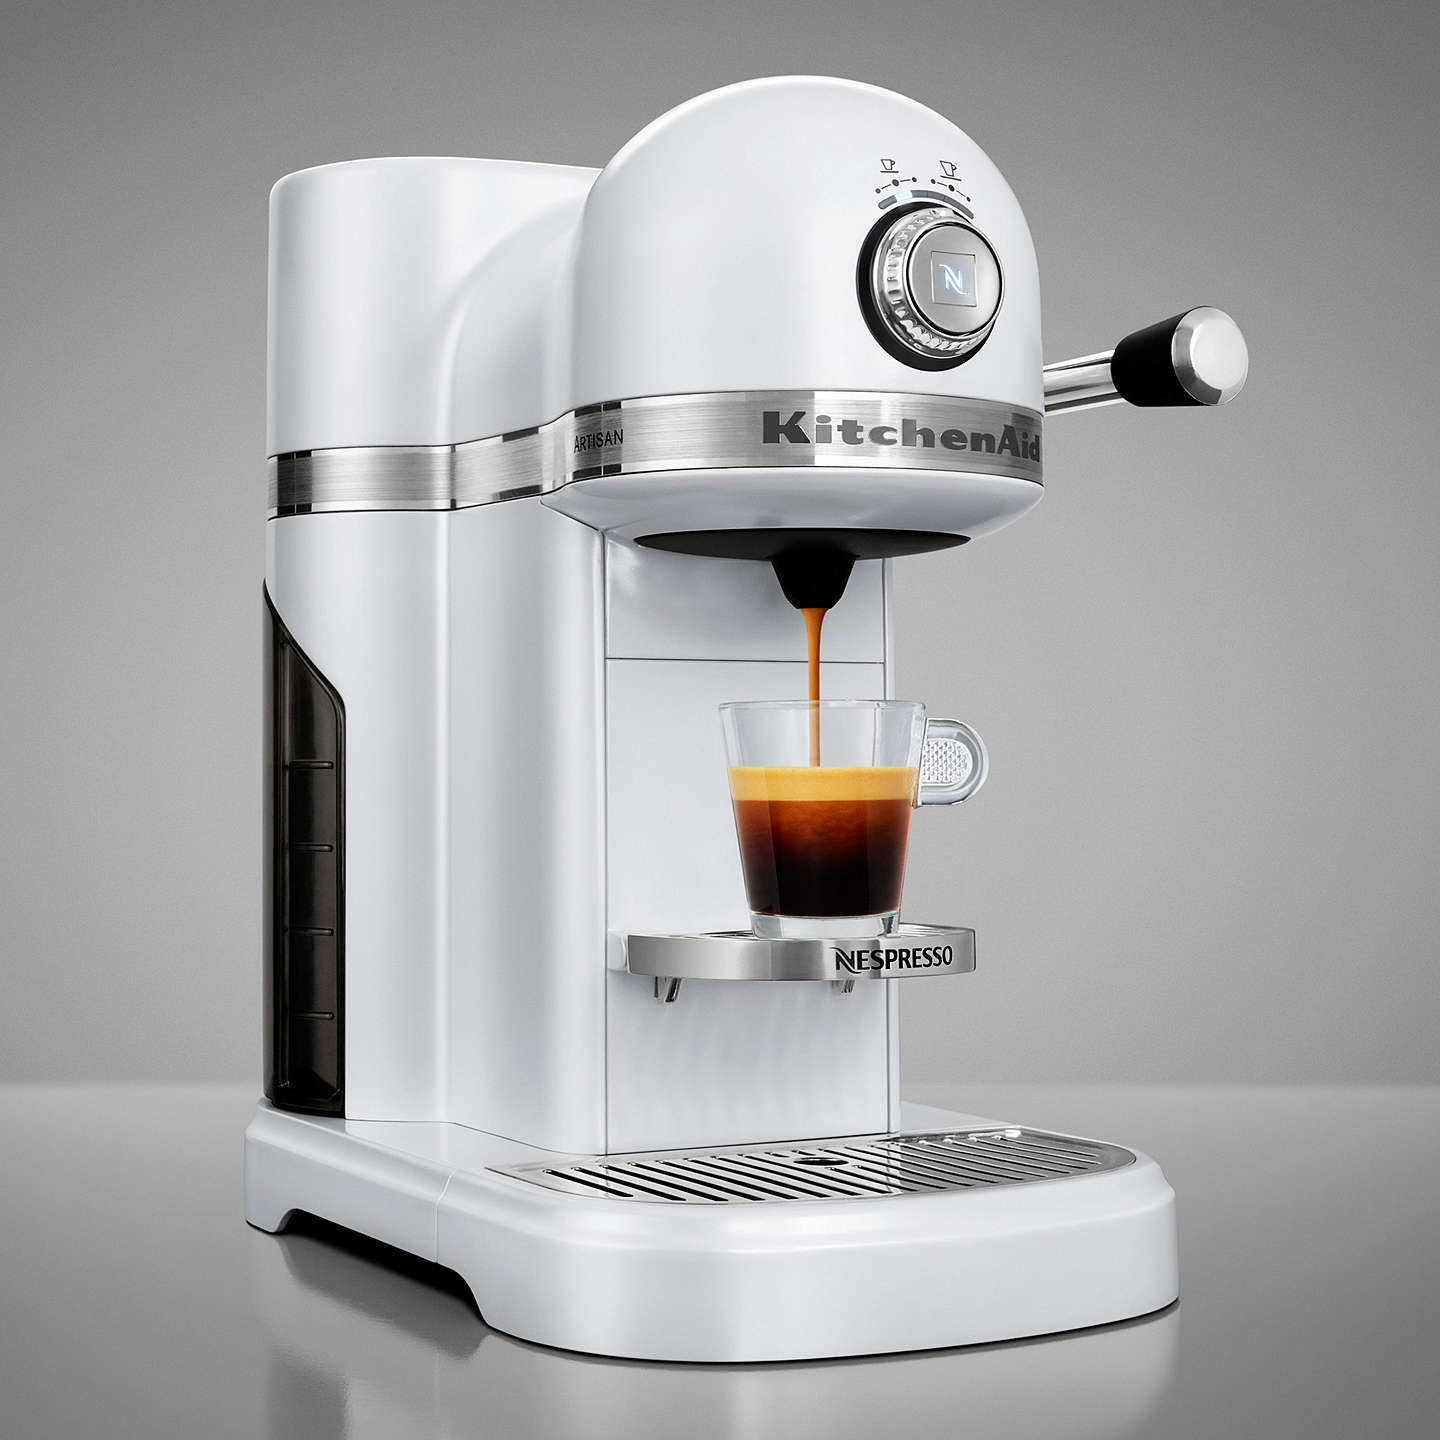 BuyNespresso Artisan Coffee Machine by KitchenAid, Frosted Pearl Online at johnlewis.com